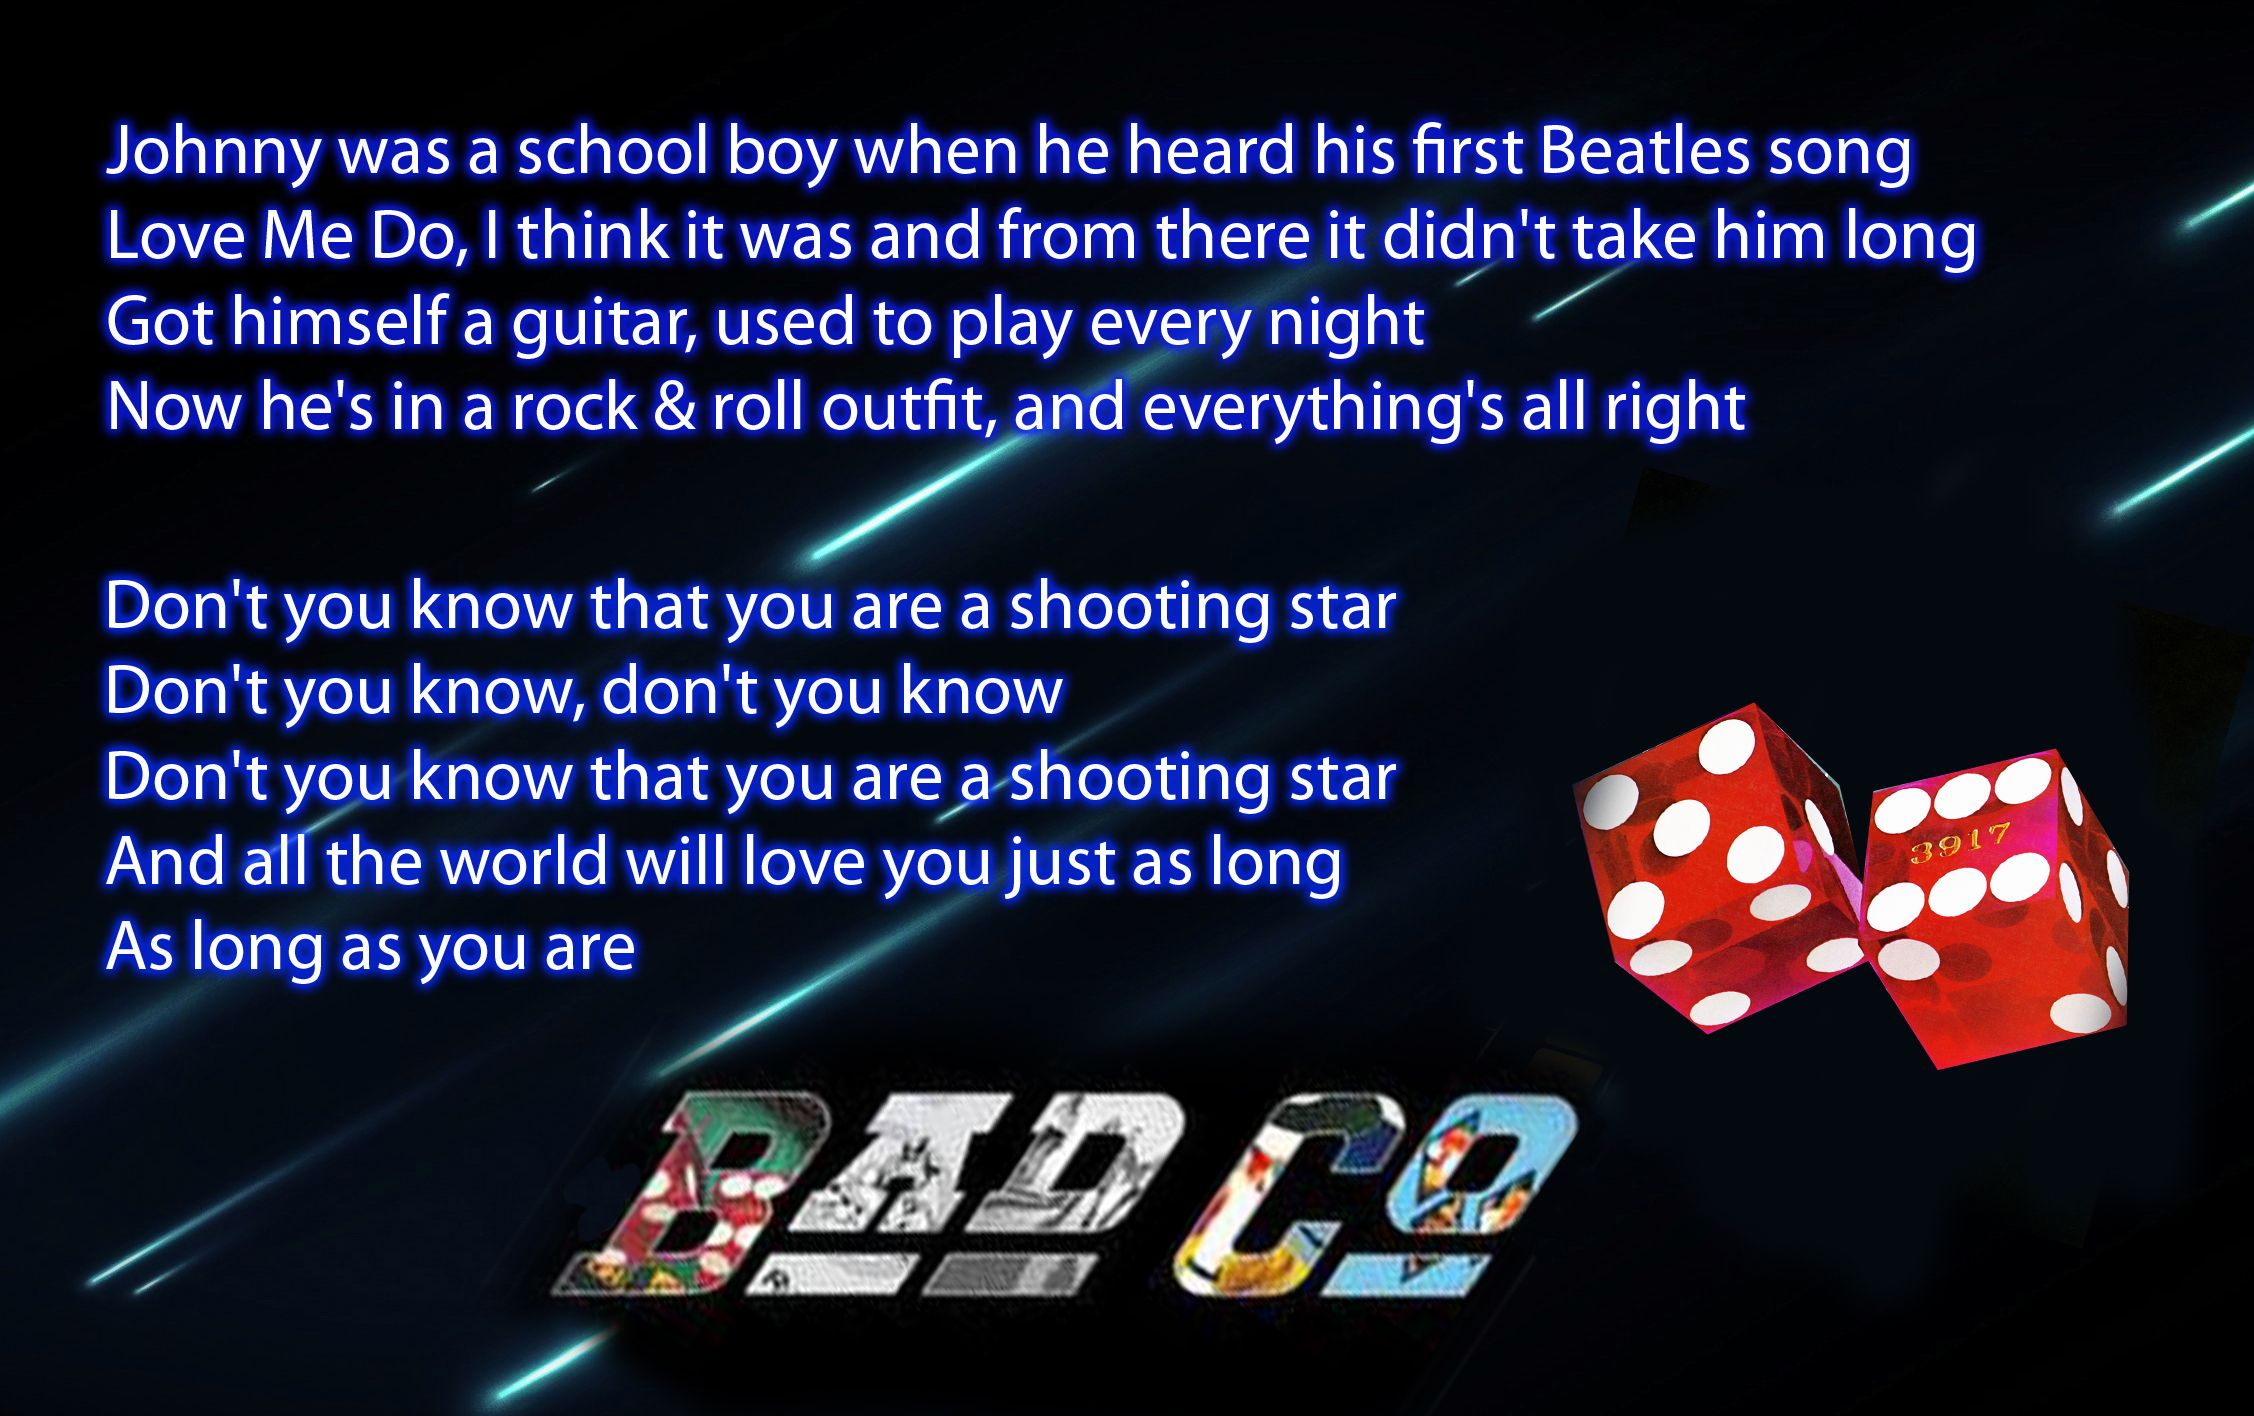 Shooting Star Straight Shooter Bad Company Beatles Songs